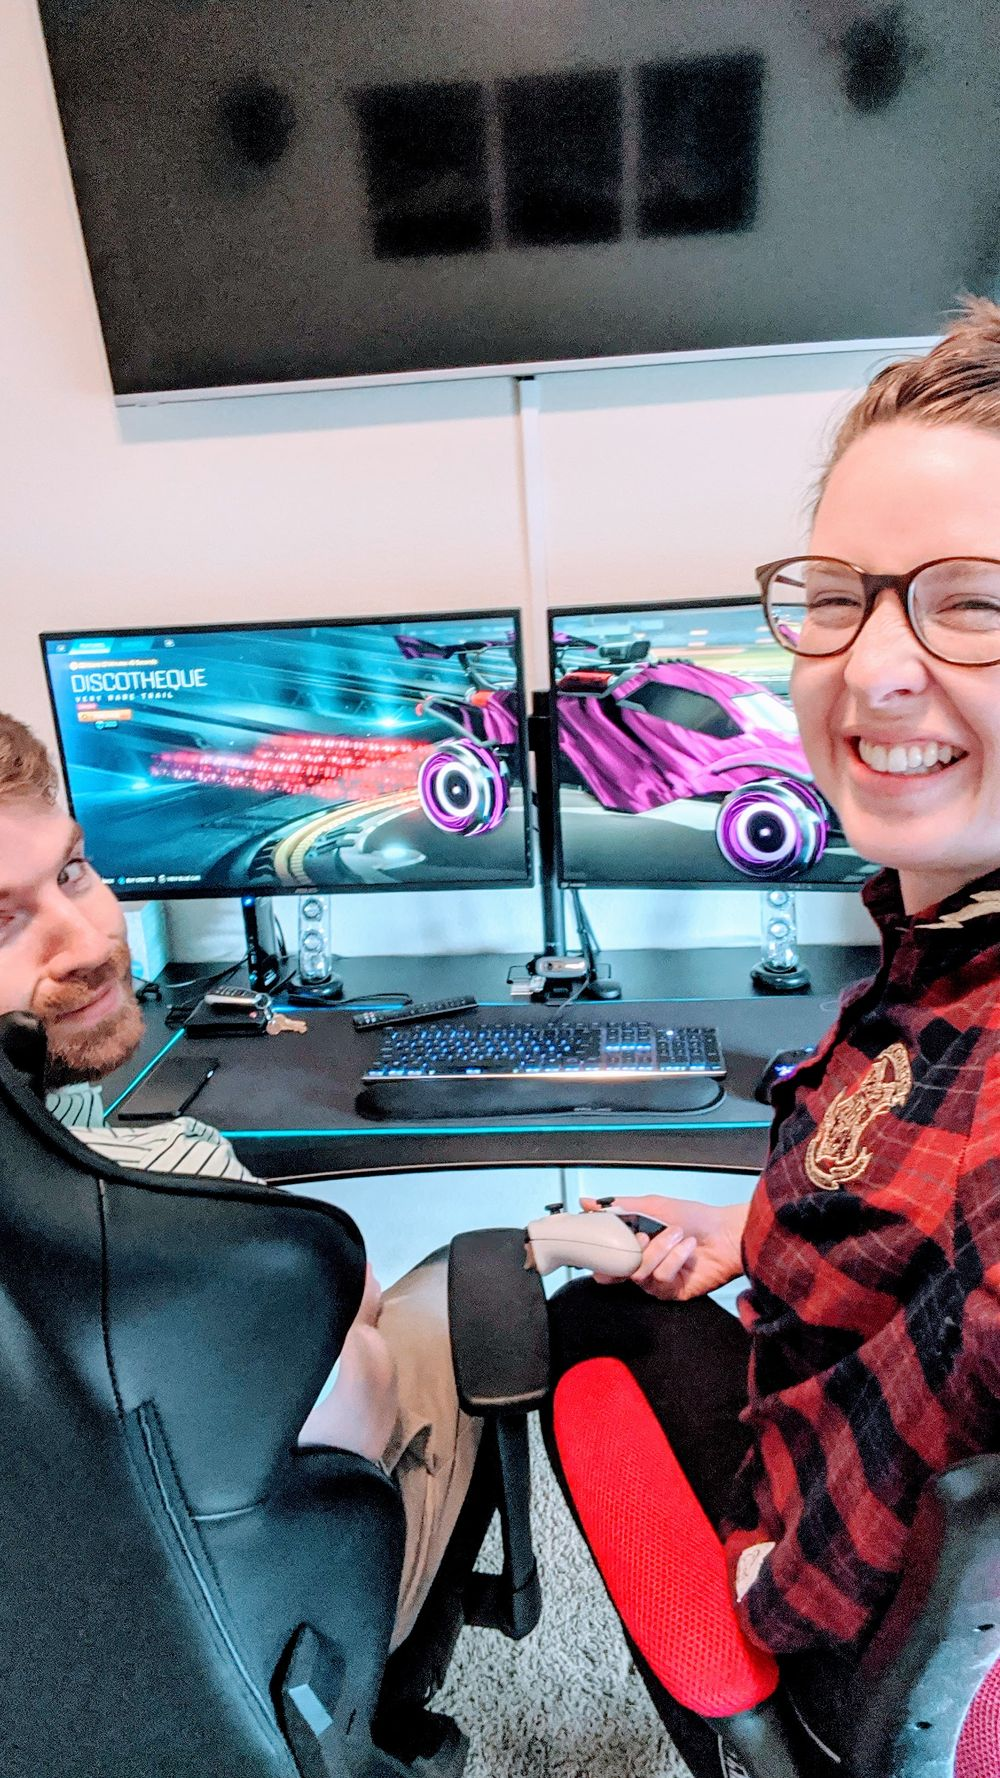 boy and girl selfie of playing rocket league video game